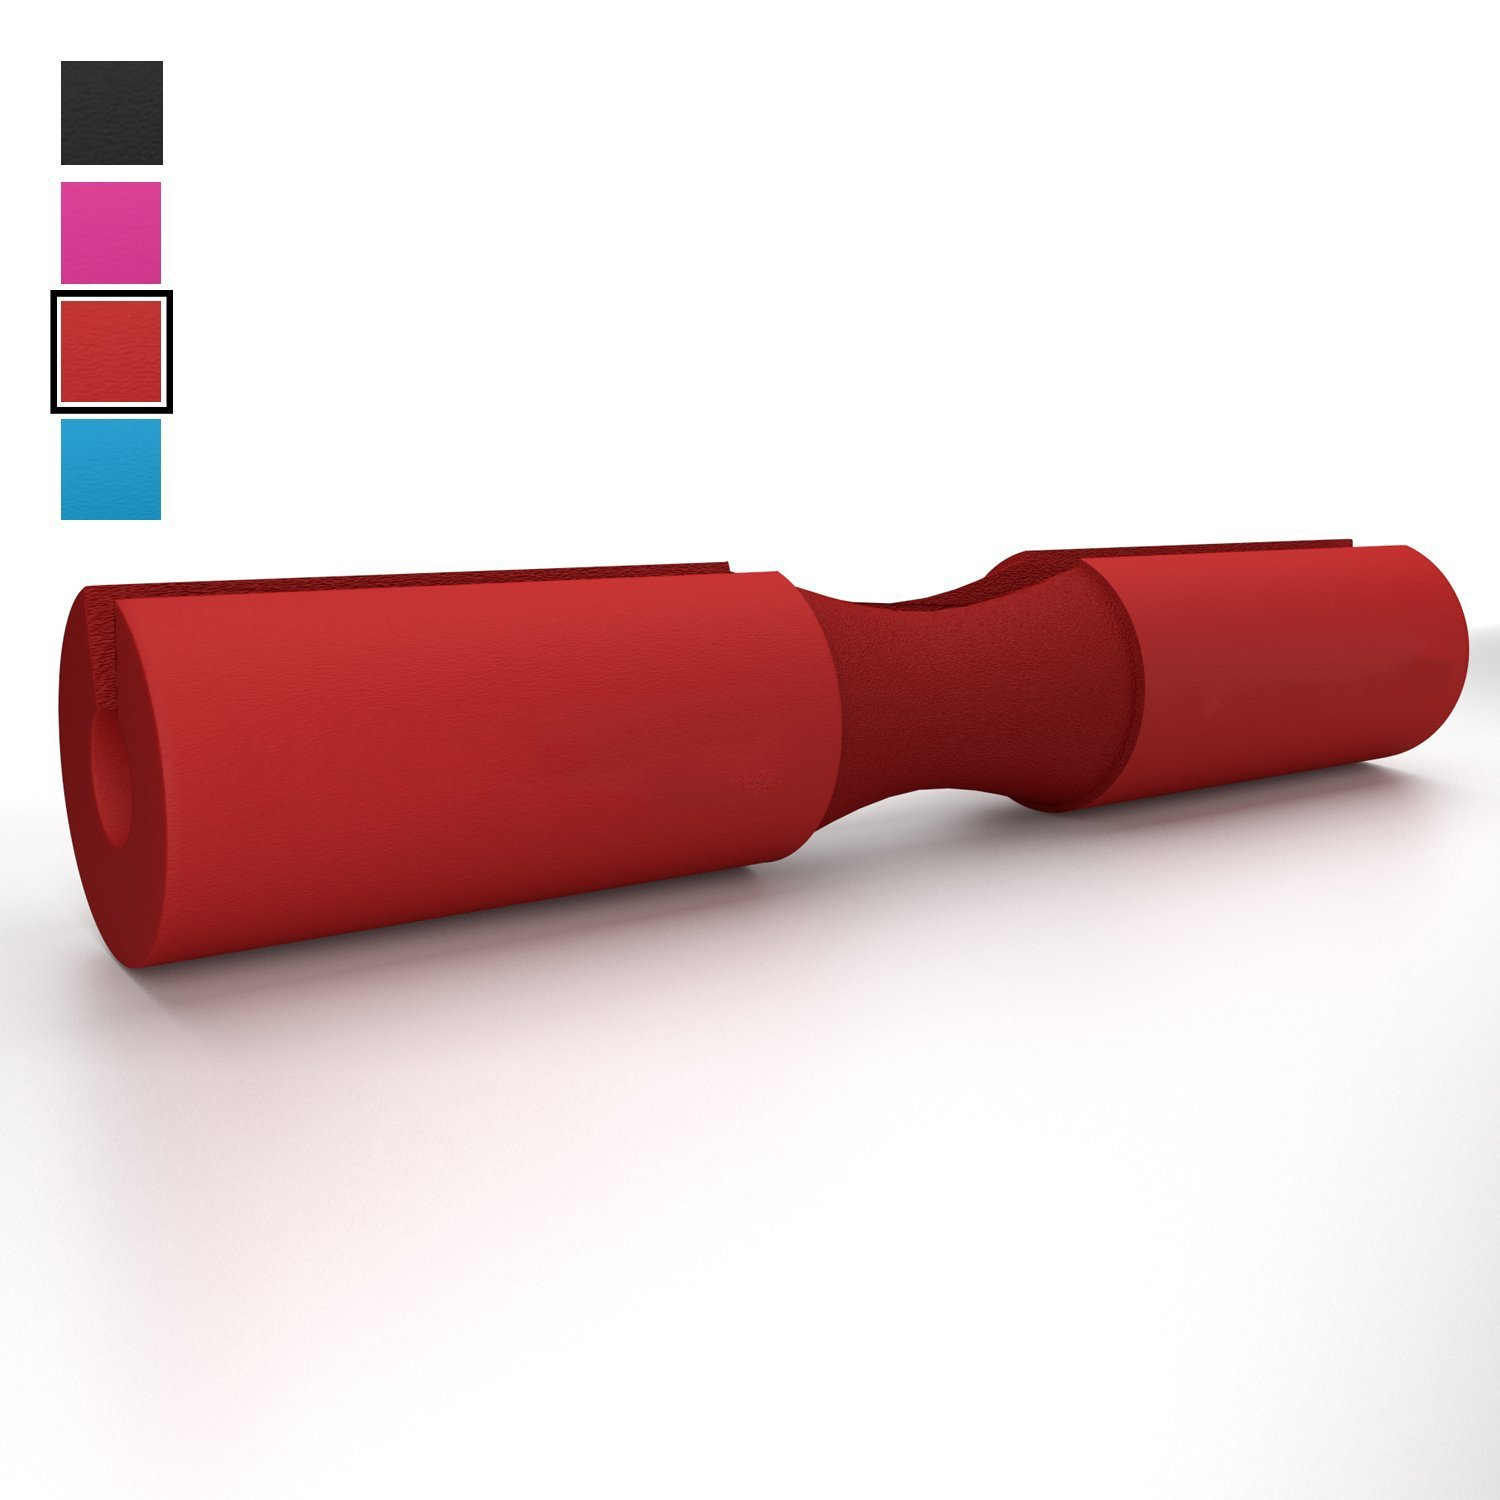 ZSZBACE Barbell Squat Pad for Athletics - Sculpt Your Lean Beach Body in Weeks with This Olympic Foam Pad - Neck & Shoulder Protective Pad Support